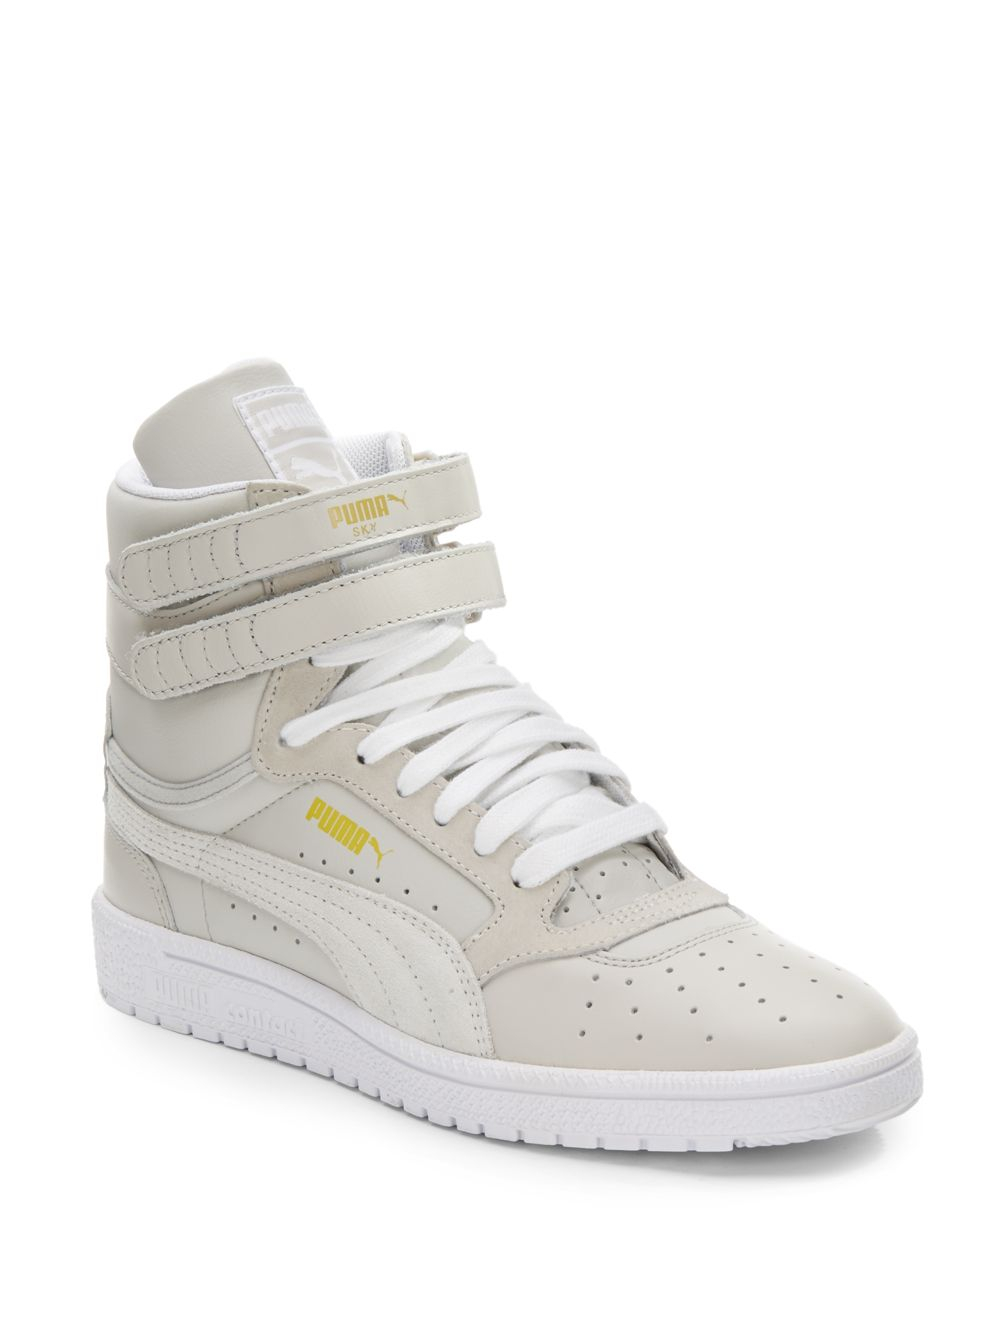 8aad9181eb2 ... discount code for lyst puma sky ii high top leather sneakers in gray  71f6a 6136f